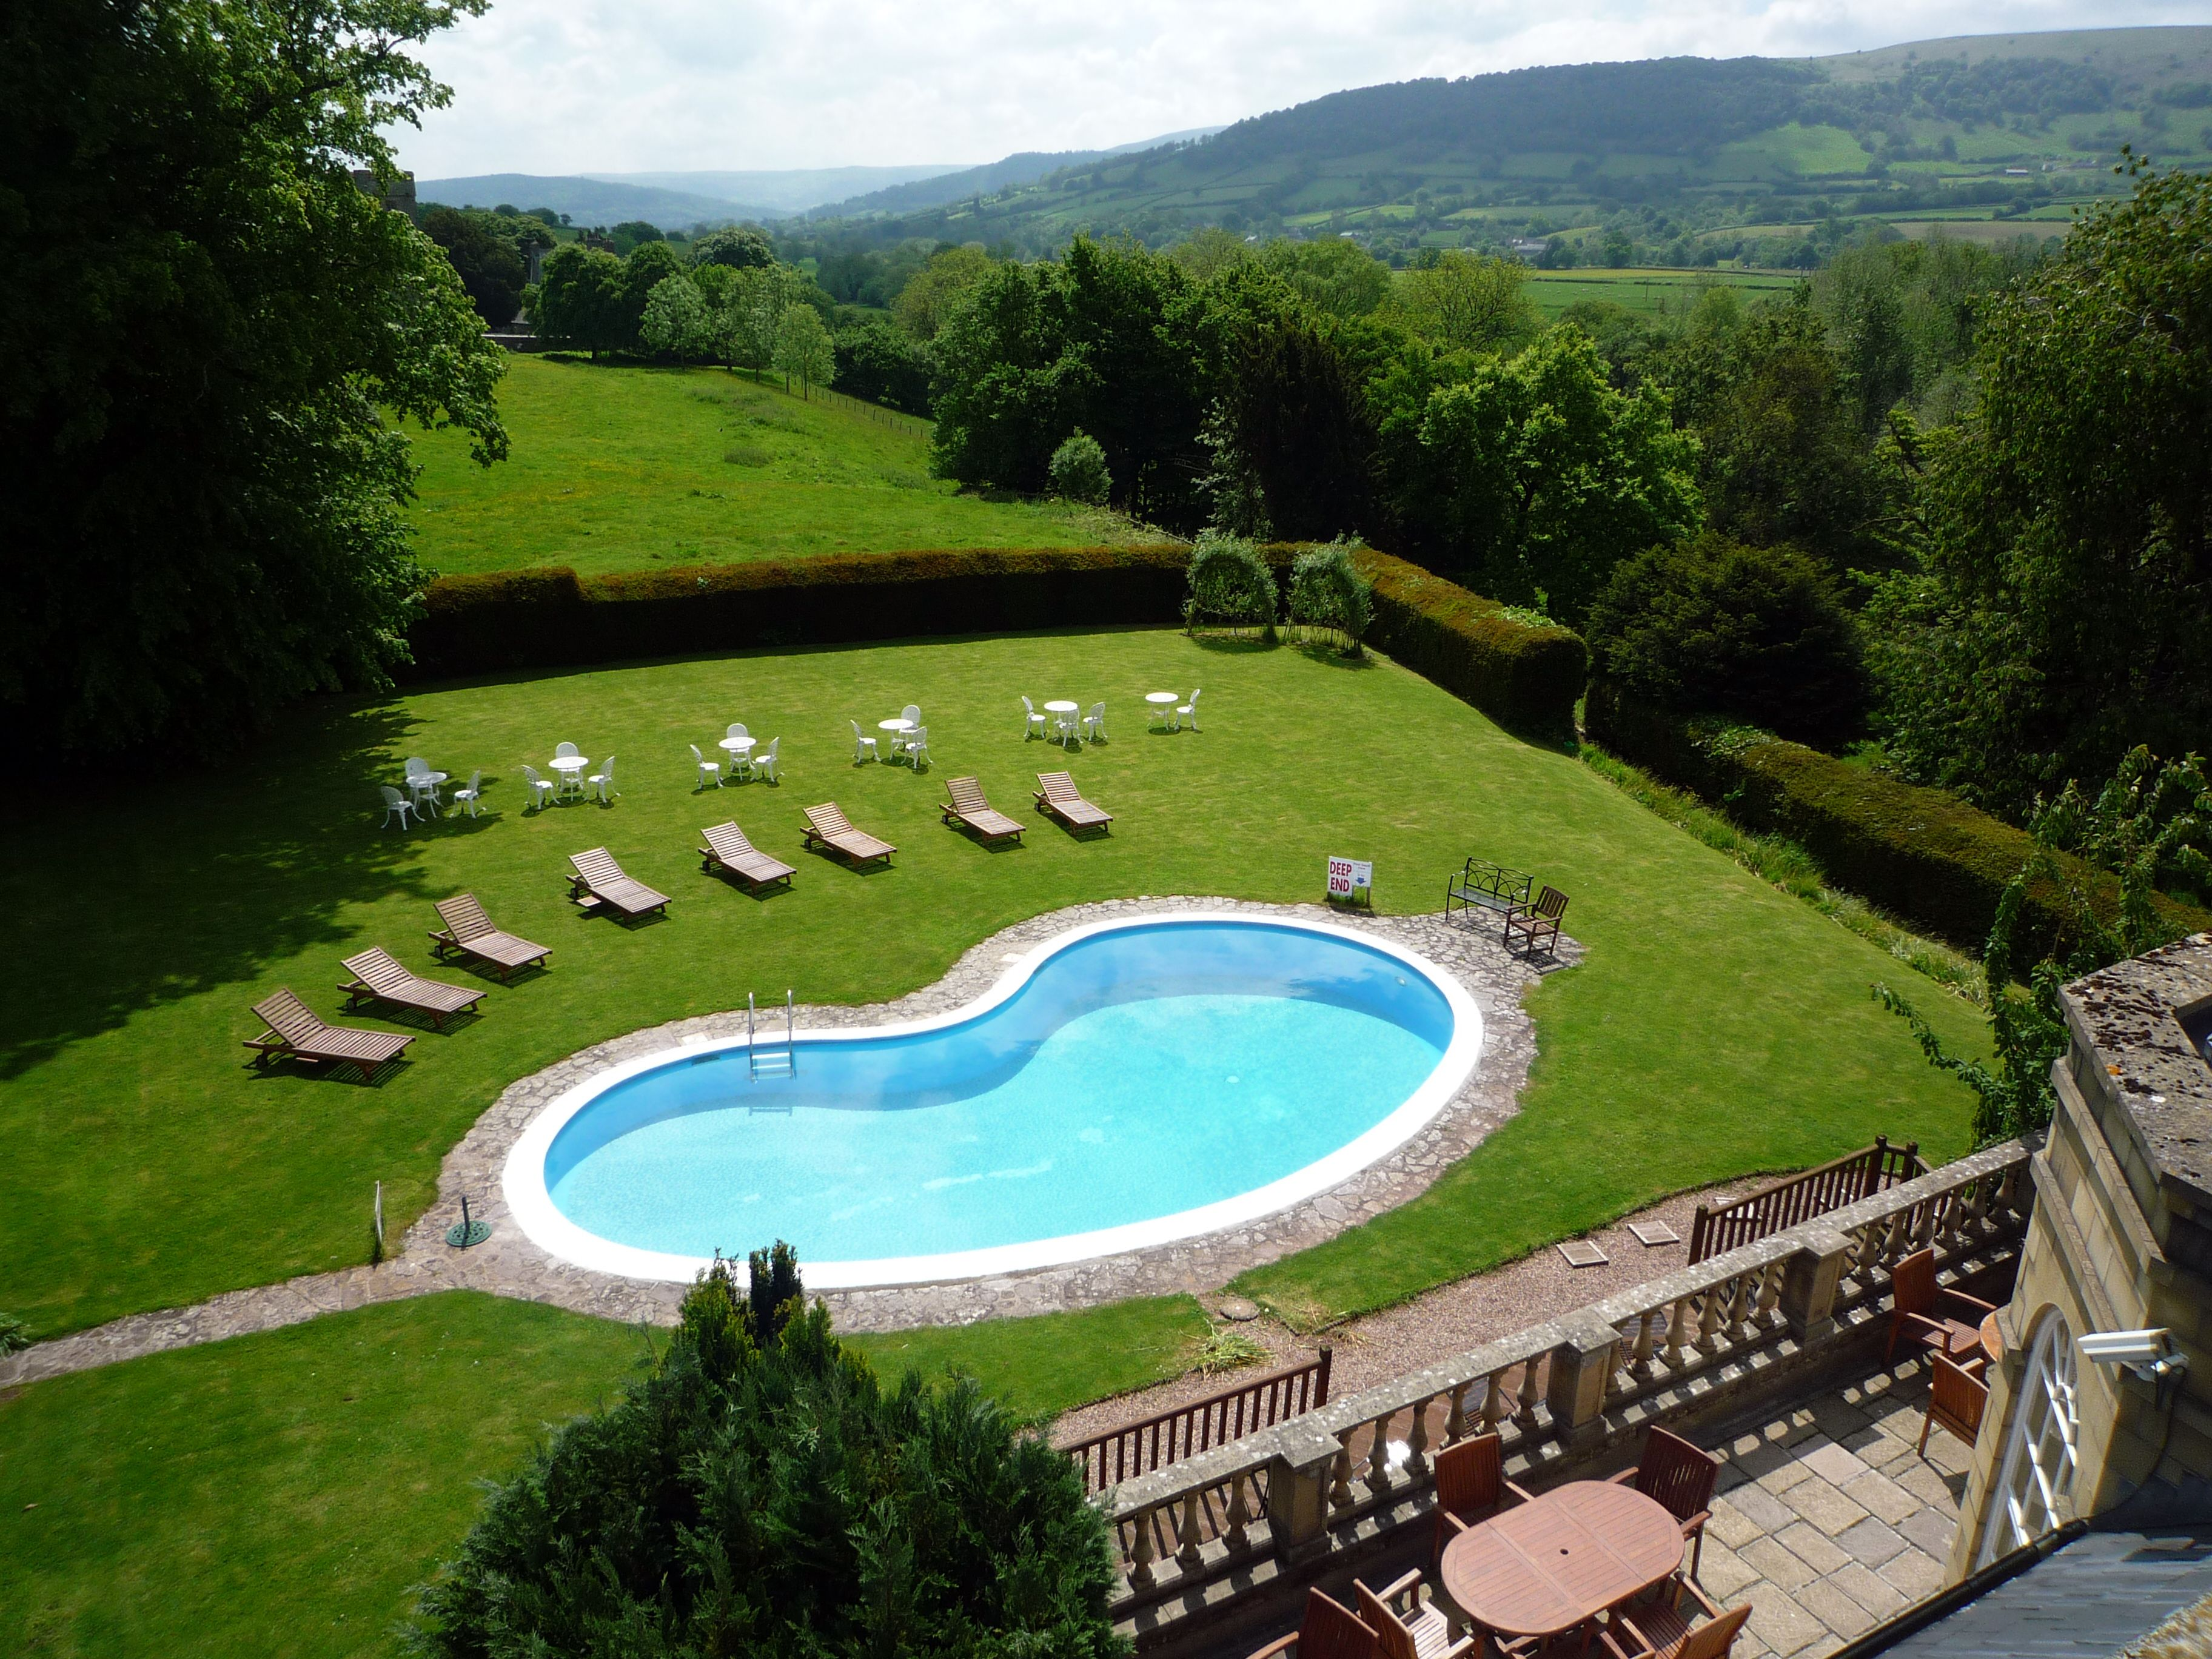 Luxury Hotels Near Brecon Peterstone Court Hotel And Spa Welsh Rarebits